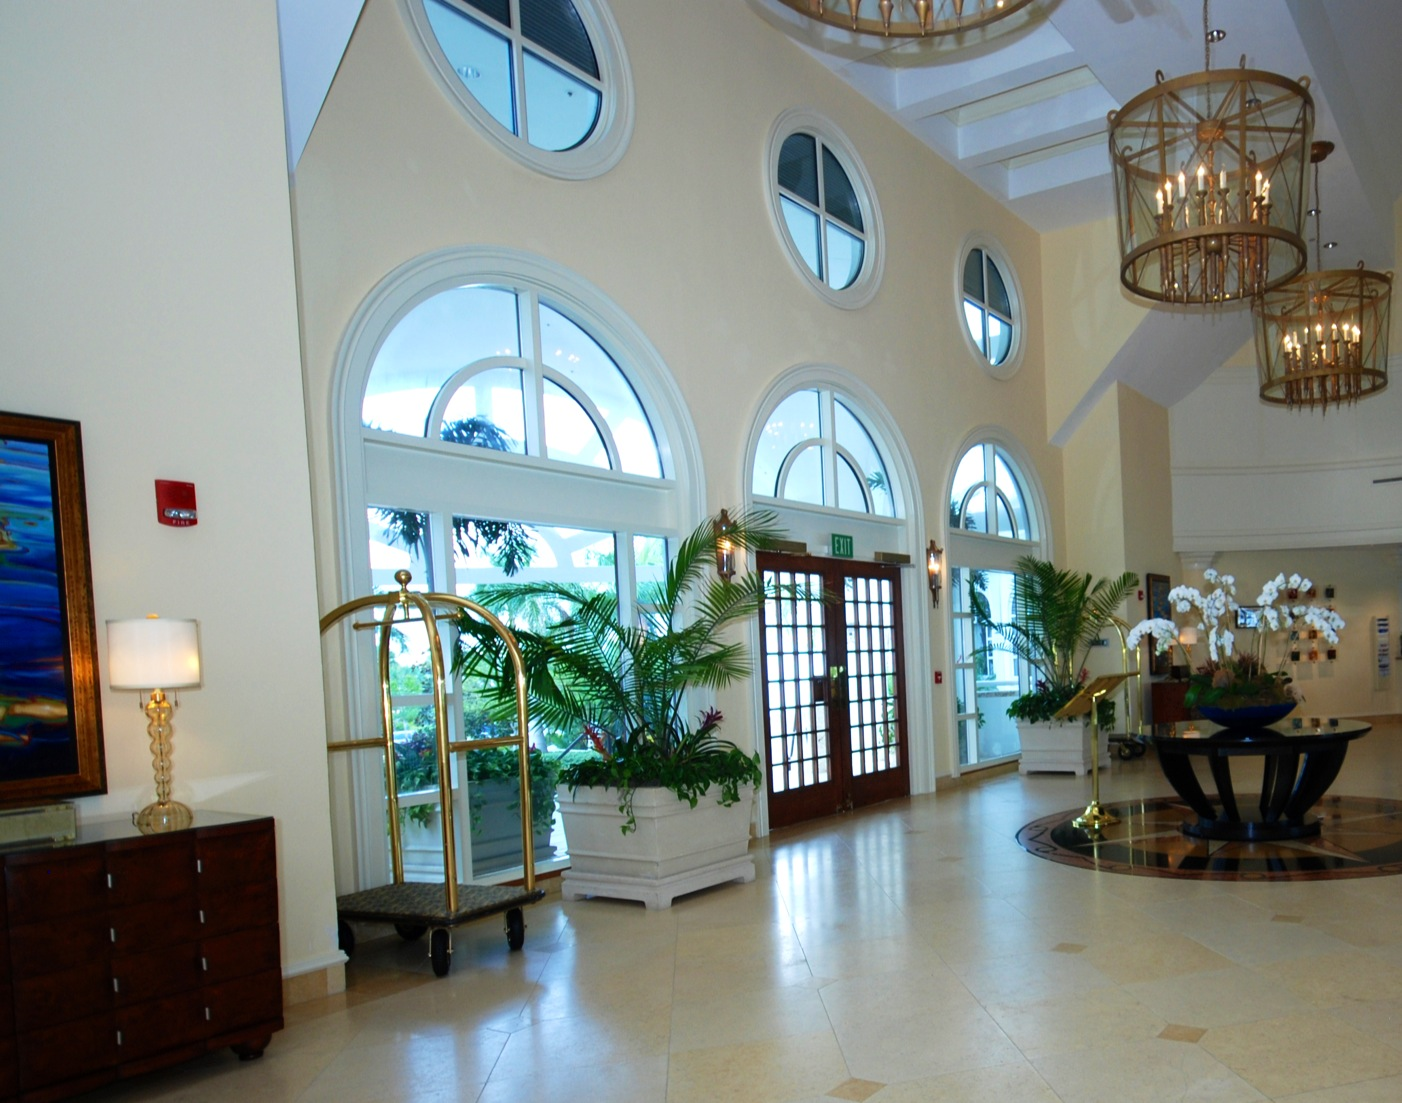 The Admirals Cove Country Club